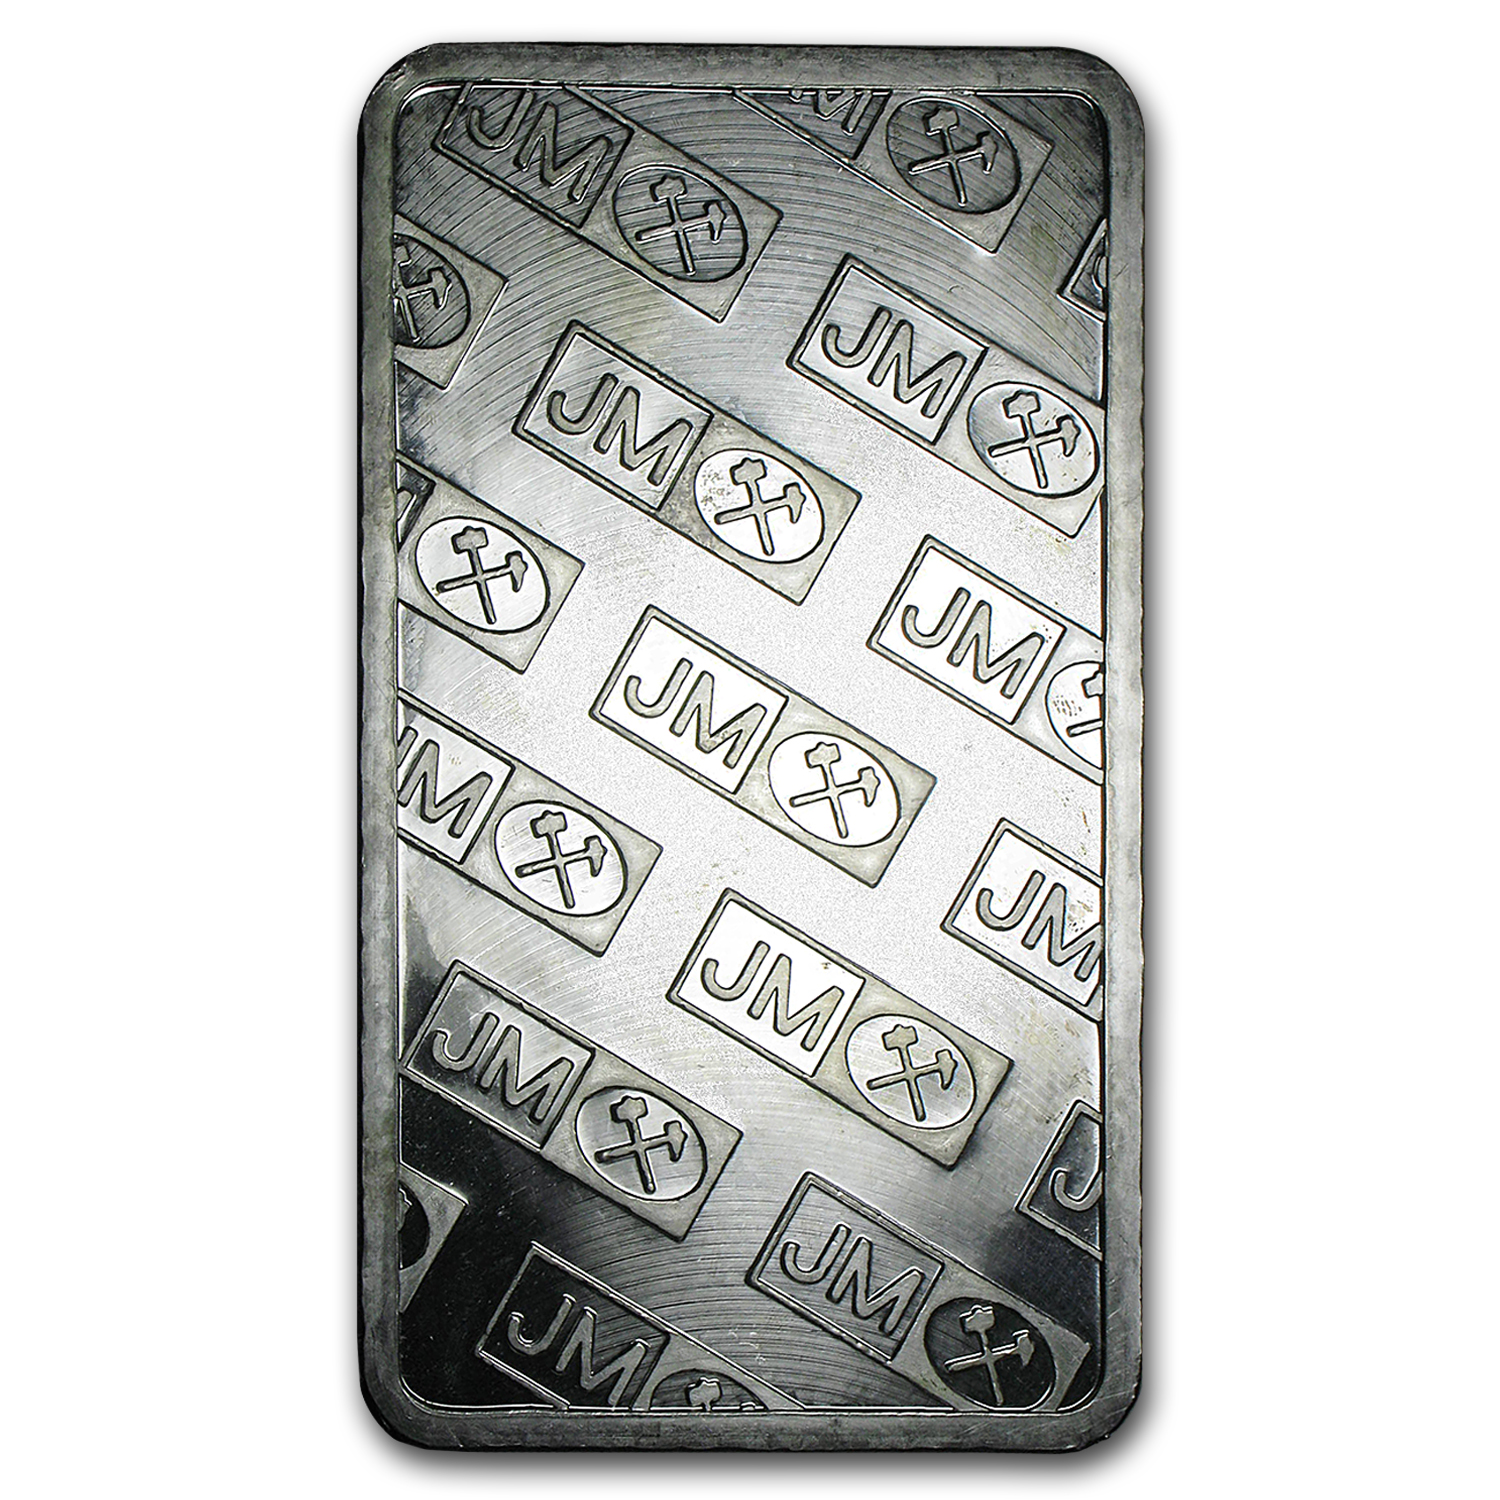 100 oz Silver Bars - Johnson Matthey (Pressed/Matching Serial #s)